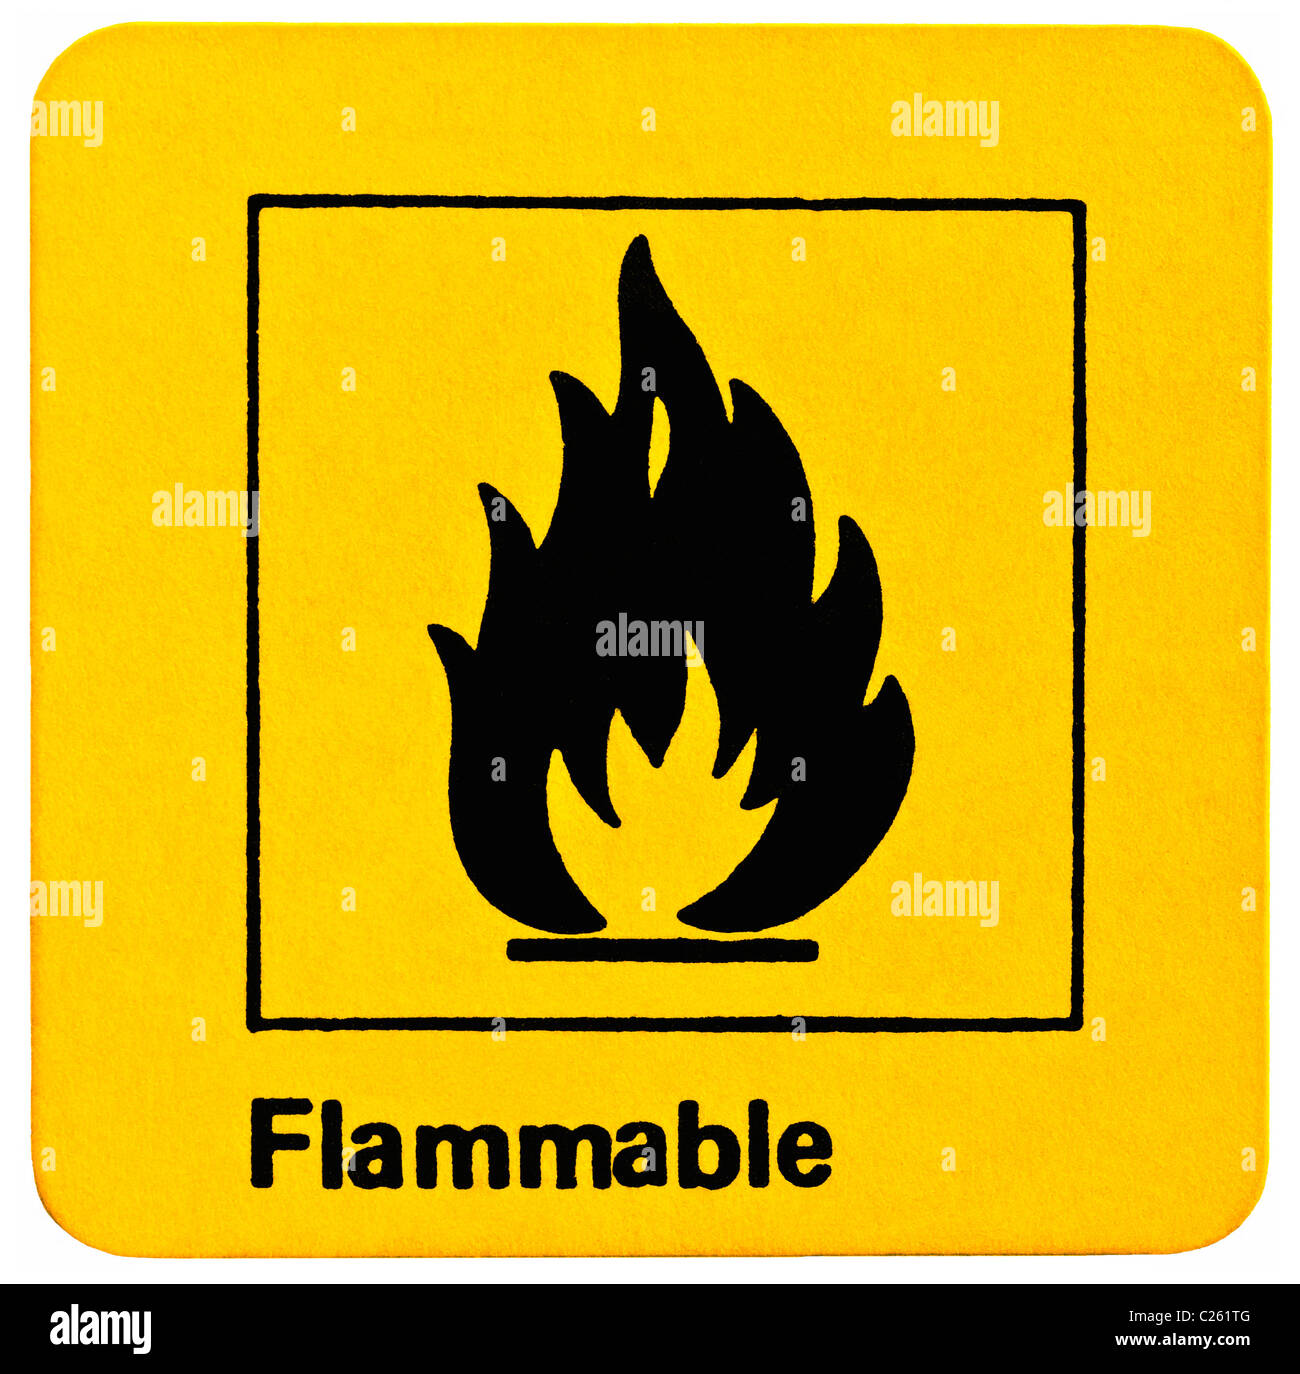 Self-adhesive sticker Flammable product warning. - Stock Image